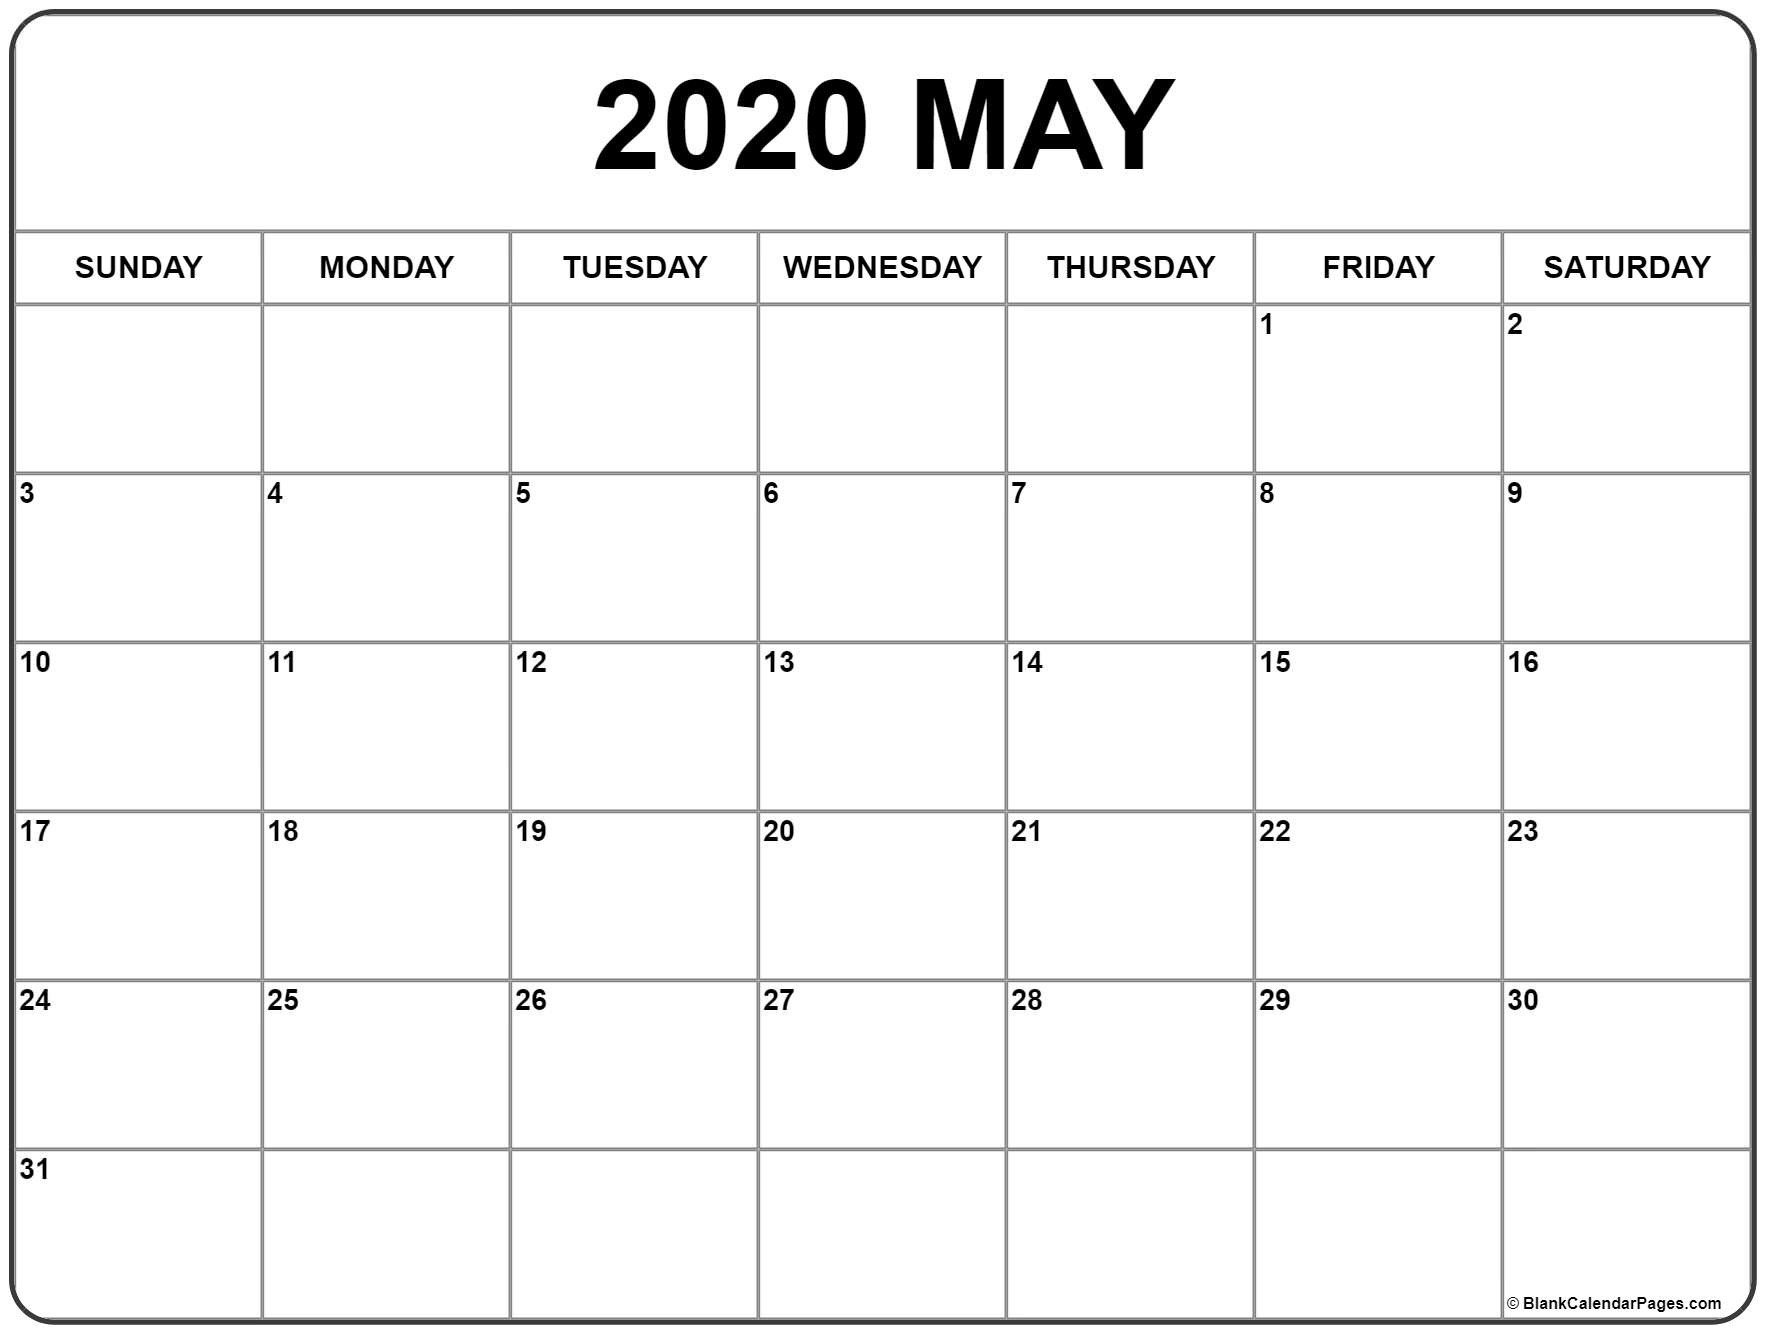 May 2020 Calendar | Free Printable Monthly Calendars  Free Printable 2020 Monthly Calendar